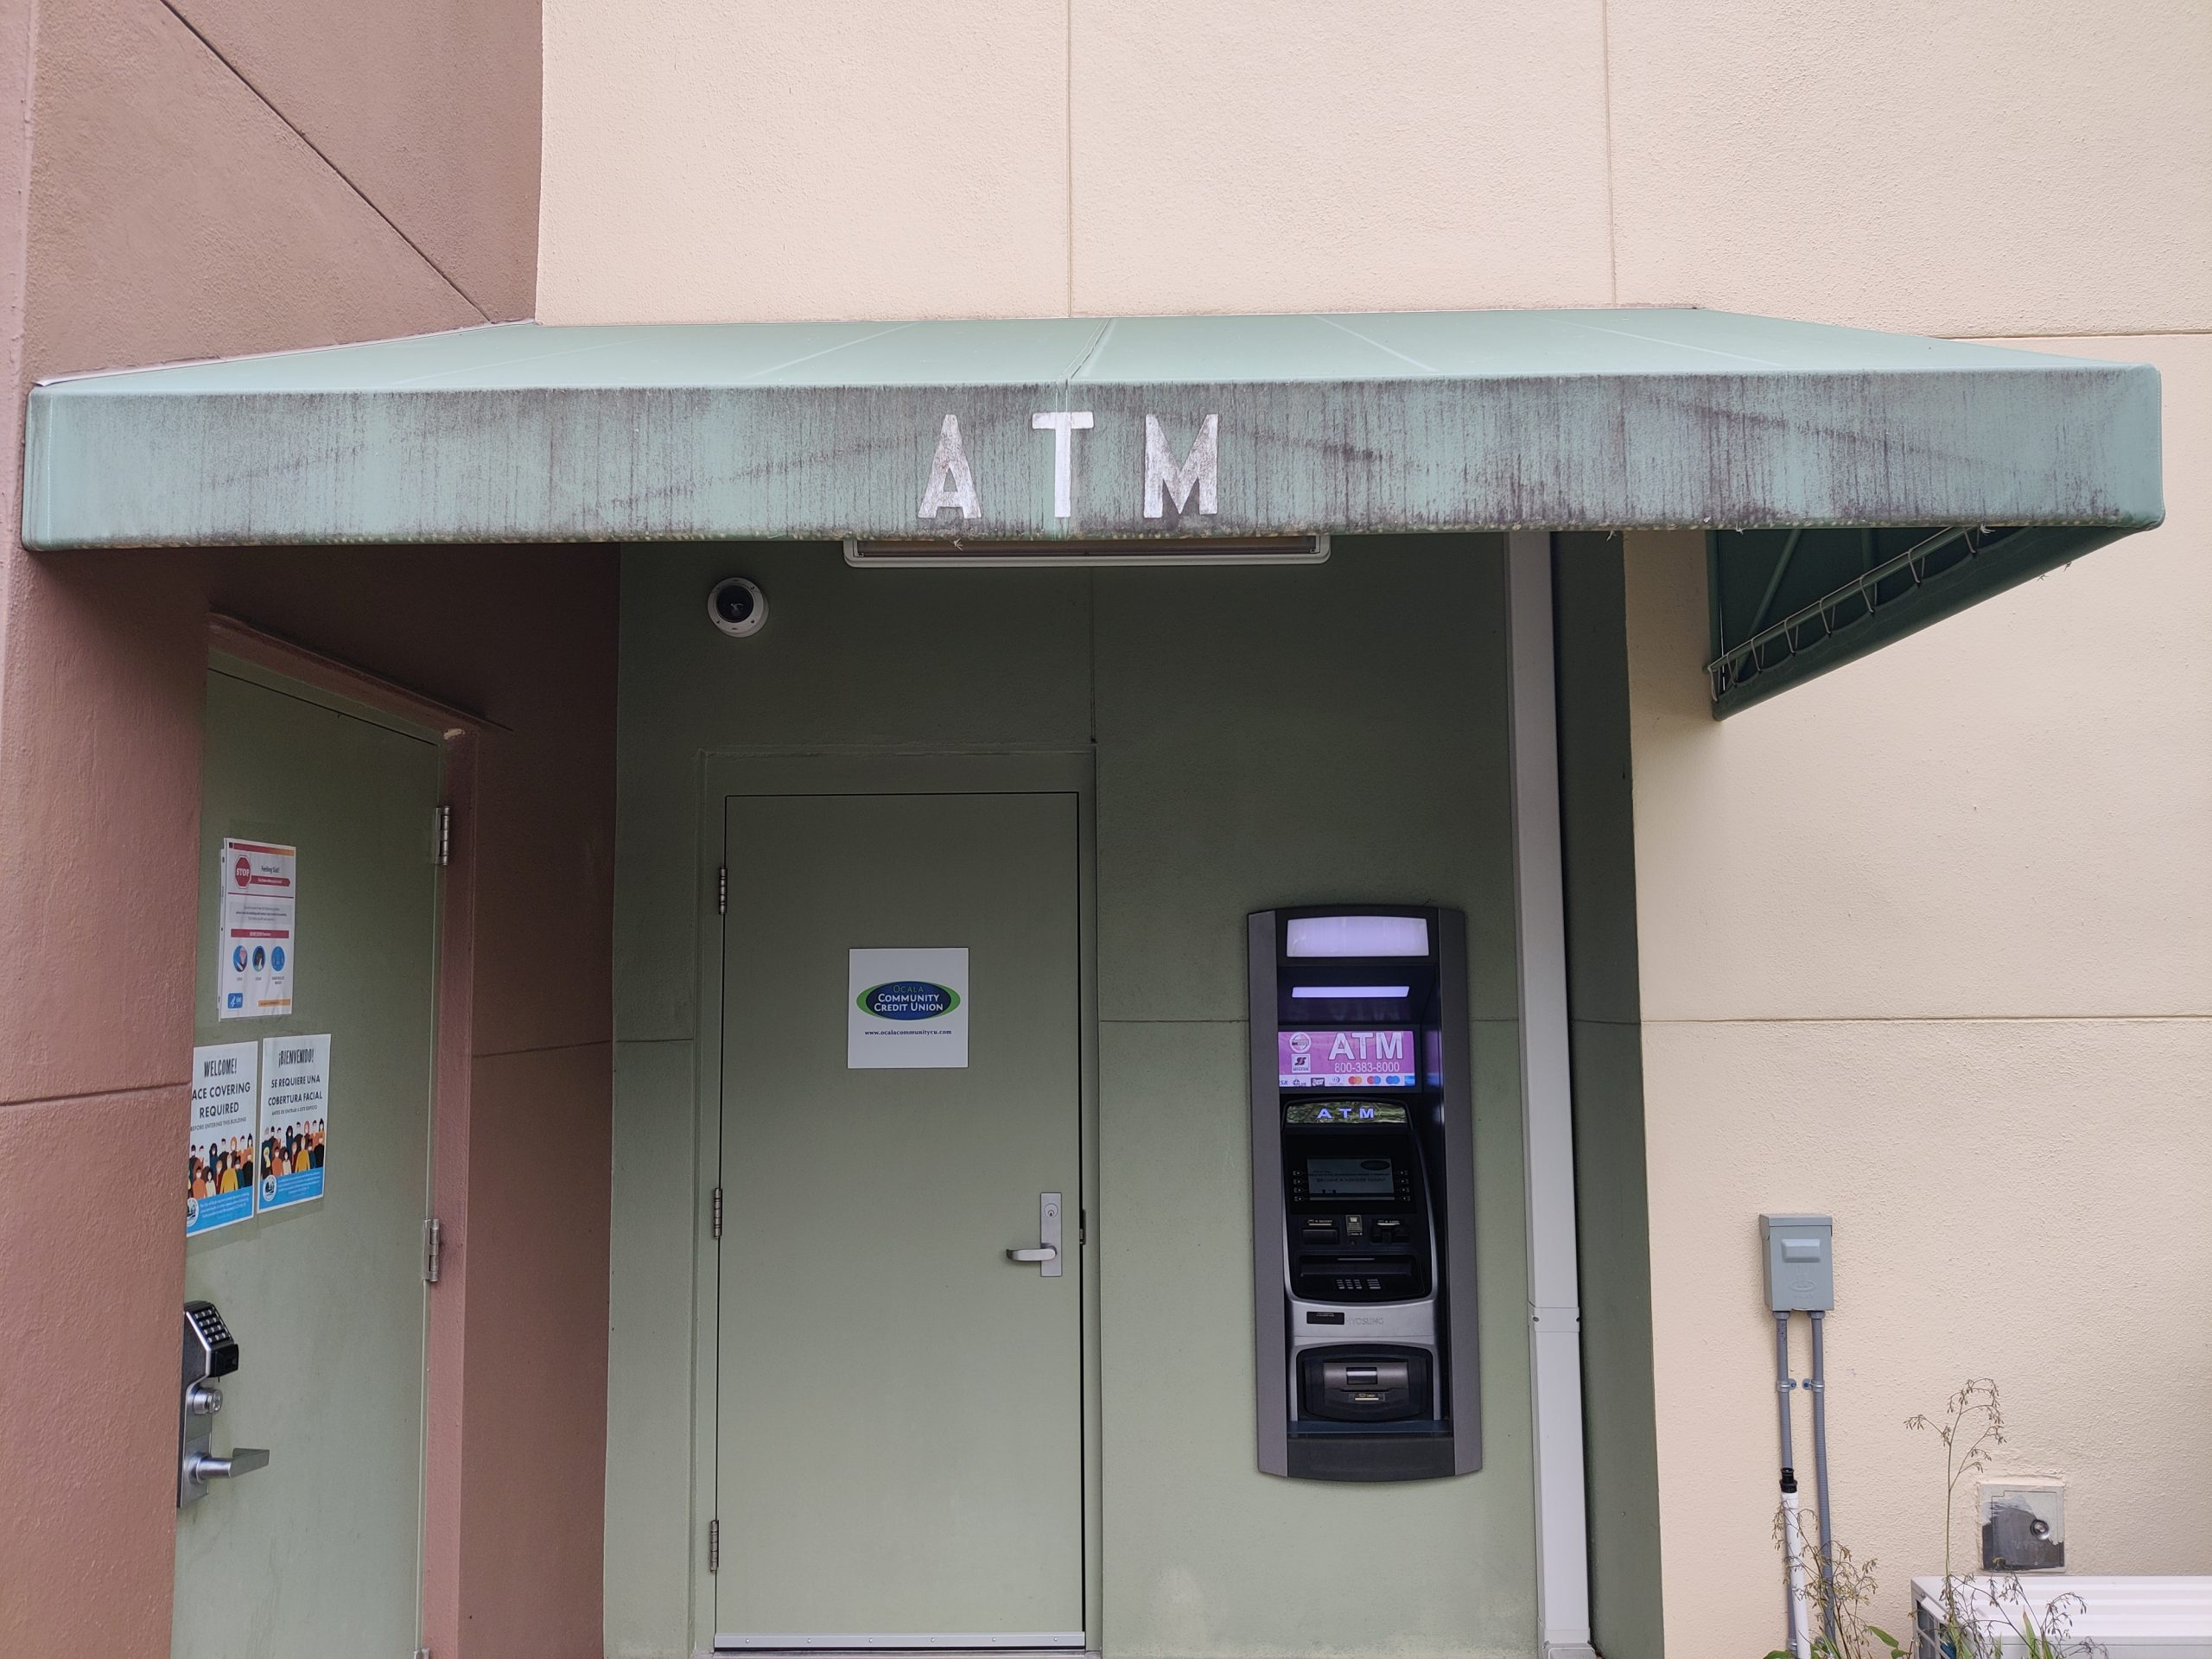 ATM Awning @ Citizen's Center - Before Cleaning